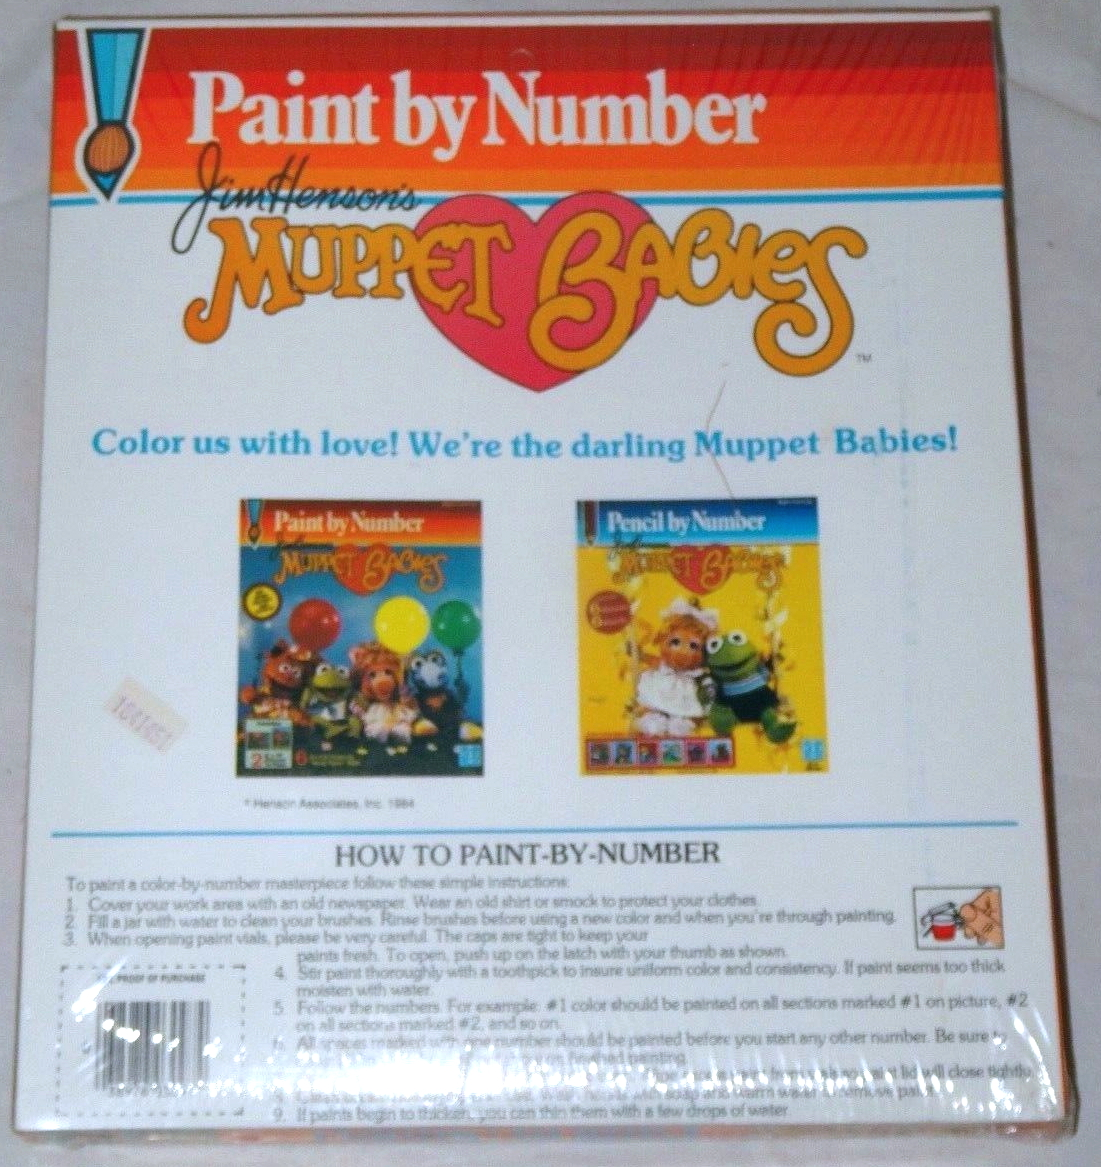 Muppet Babies Paint by Number kits | Muppet Wiki | FANDOM powered by ...